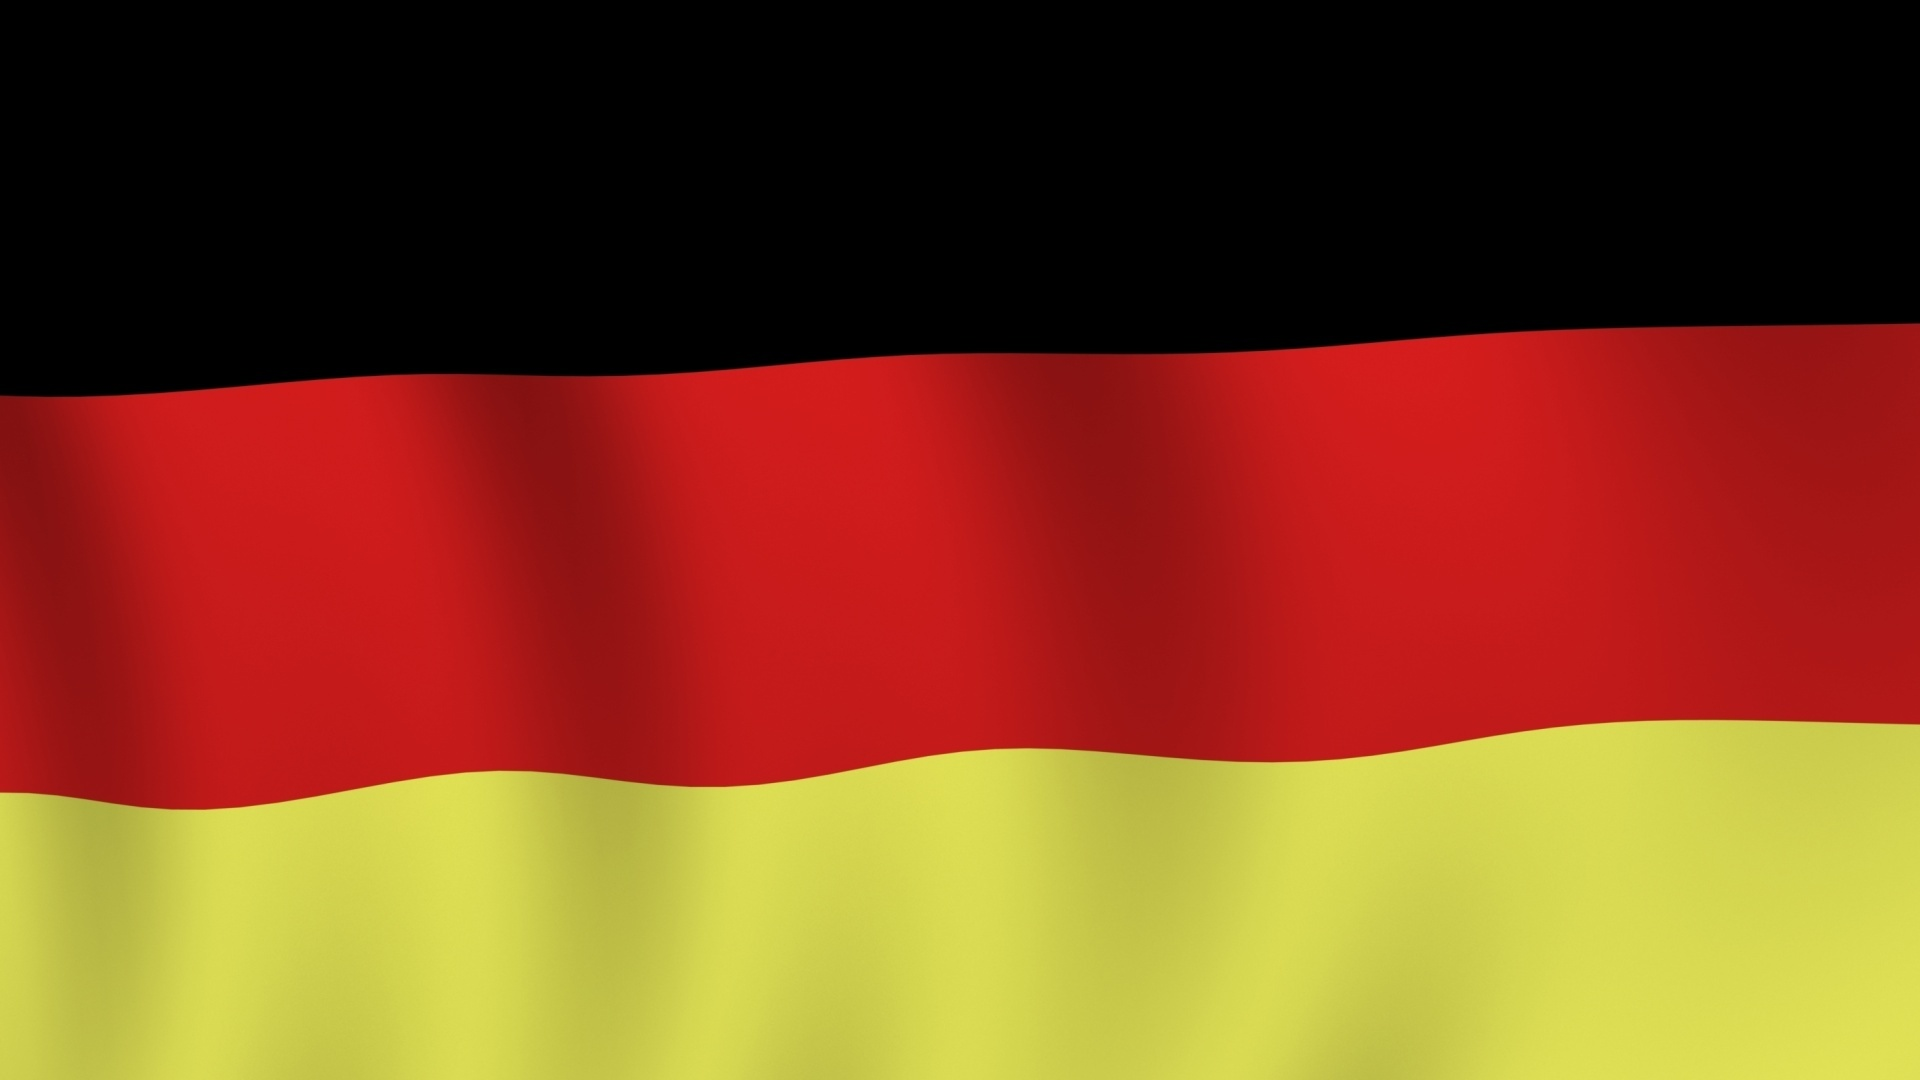 Germany flag wallpapers 1920x1080 1920x1080